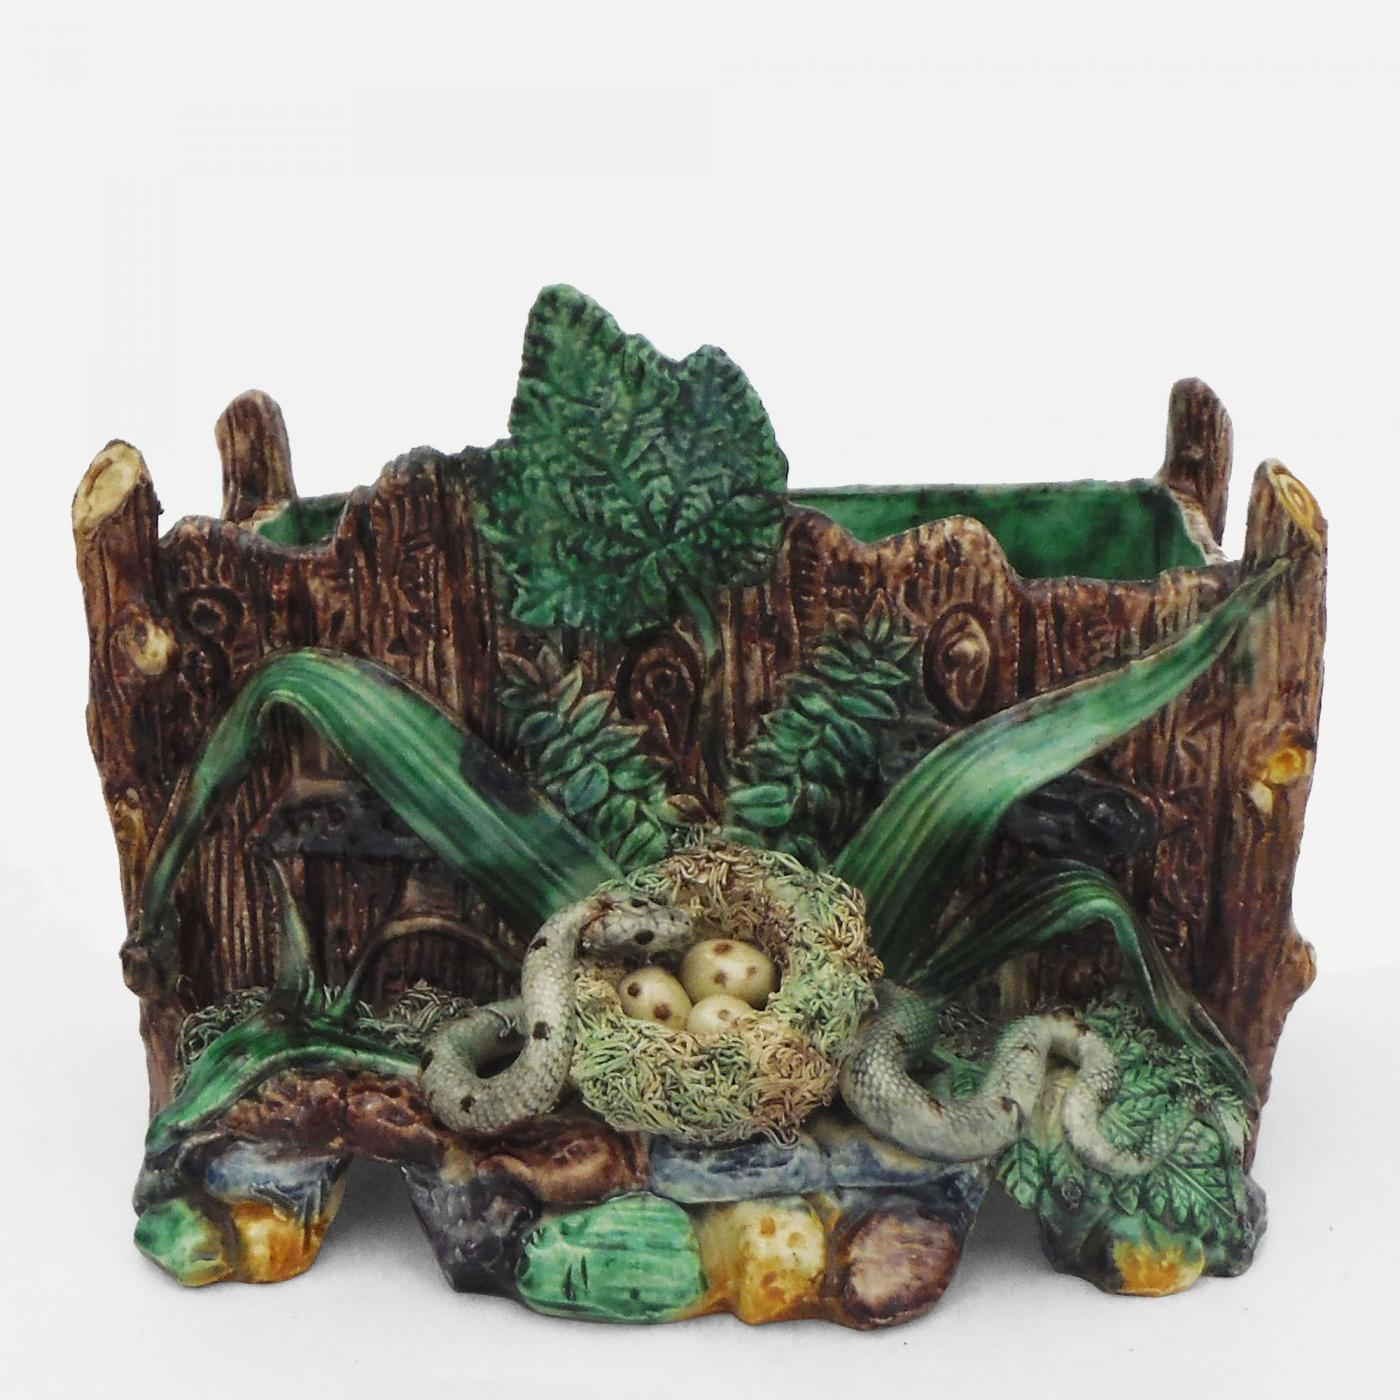 Pleasant Majolica Palissy Snake  Nest Jardiniere With Great Listings  Decorative Arts  Garden  Architectural  Planters  Jardinieres With Delectable Southdown Garden Centre Also Museum Gardens London In Addition How To Make A Garden Bench From A Pallet And Garden Awnings For Sale As Well As Beech Hurst Gardens Additionally Thai Garden Weybridge From Incollectcom With   Great Majolica Palissy Snake  Nest Jardiniere With Delectable Listings  Decorative Arts  Garden  Architectural  Planters  Jardinieres And Pleasant Southdown Garden Centre Also Museum Gardens London In Addition How To Make A Garden Bench From A Pallet From Incollectcom